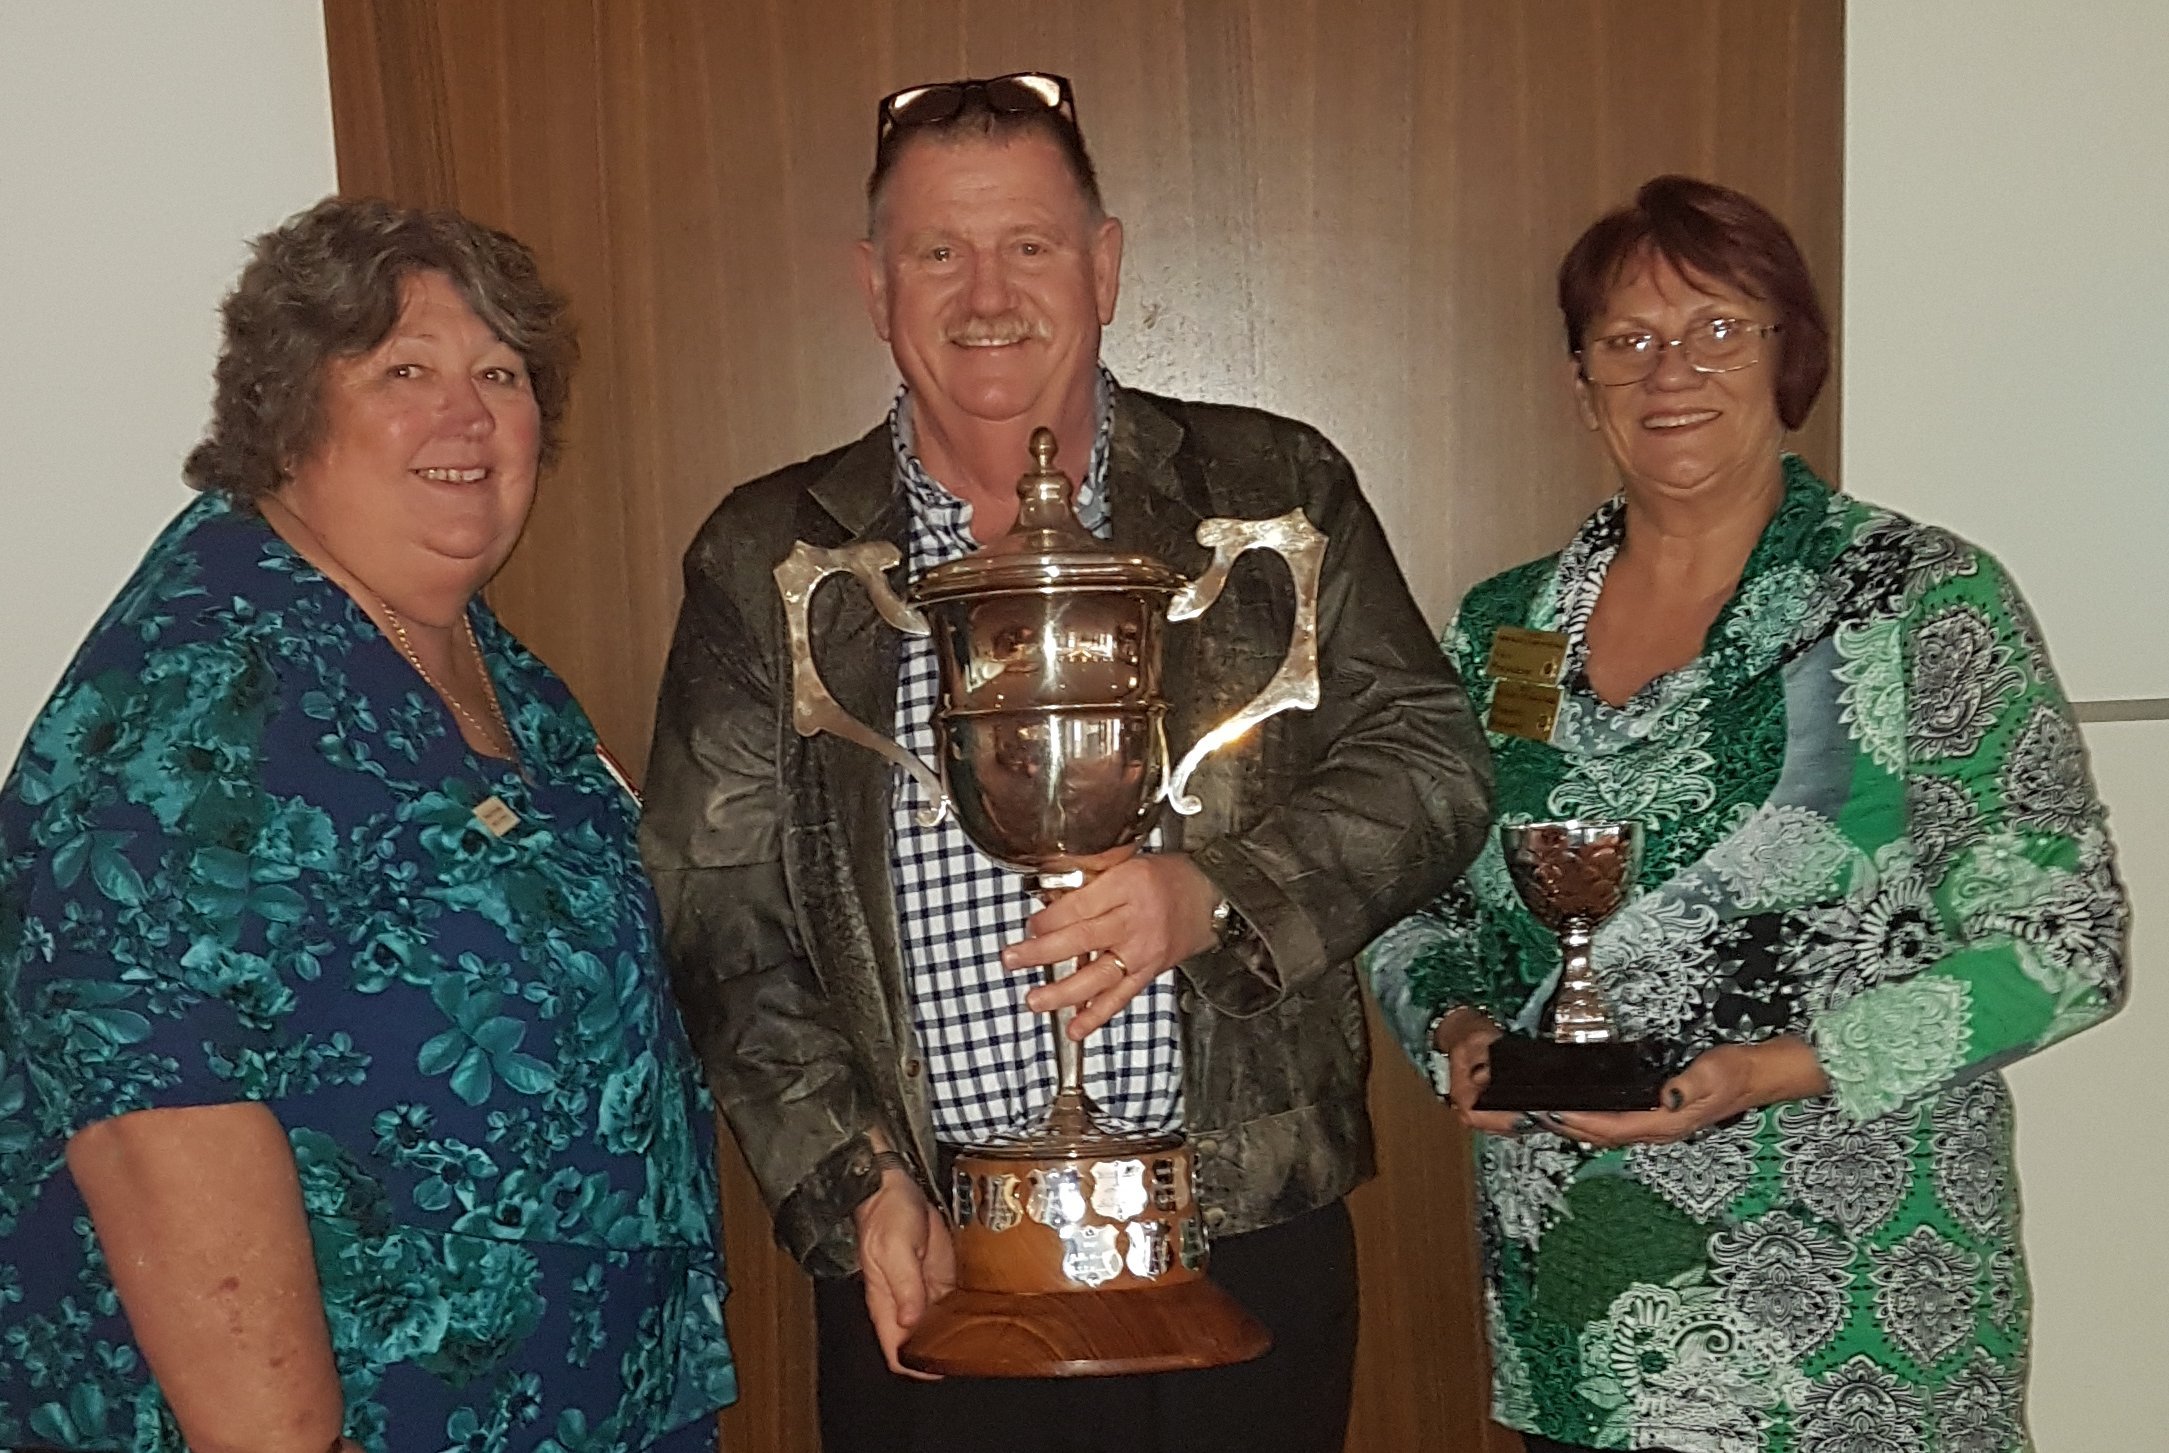 Donna Prytulak Northam RSL Membership officer and RSL WA Vice President, Mick Prytulak President Northam RSL and Denette Bernard Vice President Northam RSL  holding the Colonel Collett Trophy